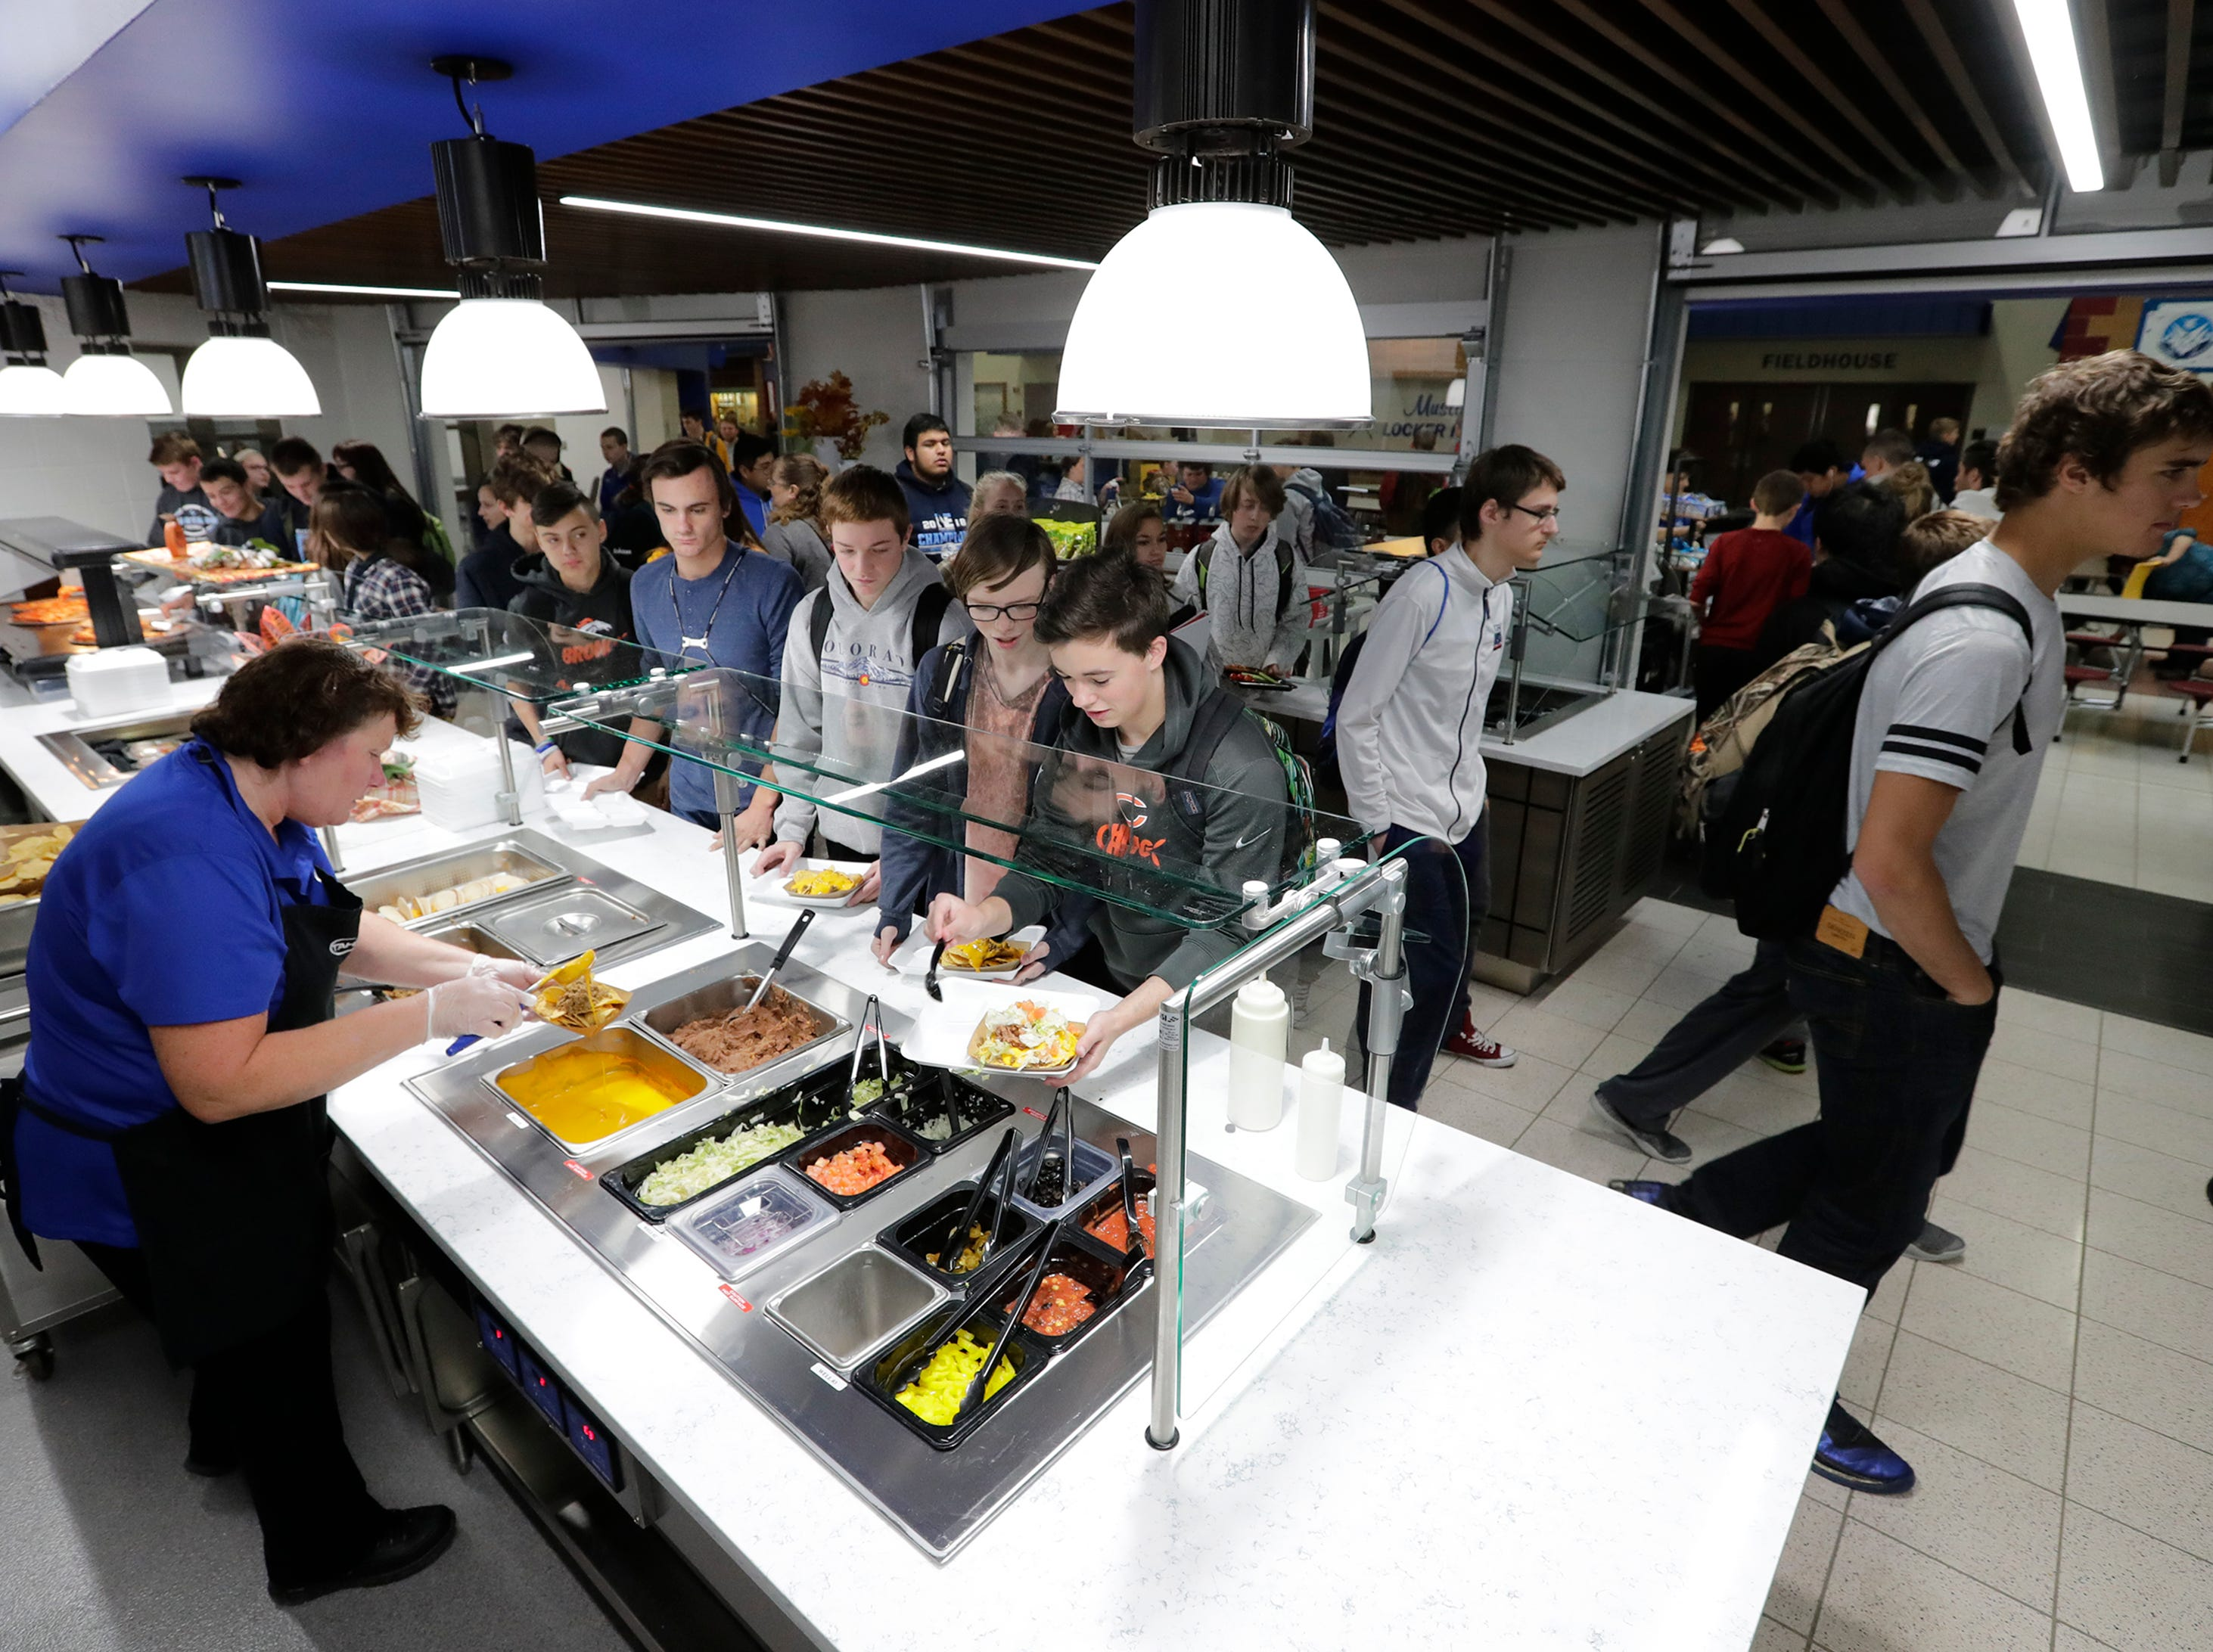 Sherrie Hoelzel, left, serves lunch to students in part of the new dining area at Little Chute High School Tuesday, November 6, 2018, in Little Chute, Wis. Dan Powers/USA TODAY NETWORK-Wisconsin